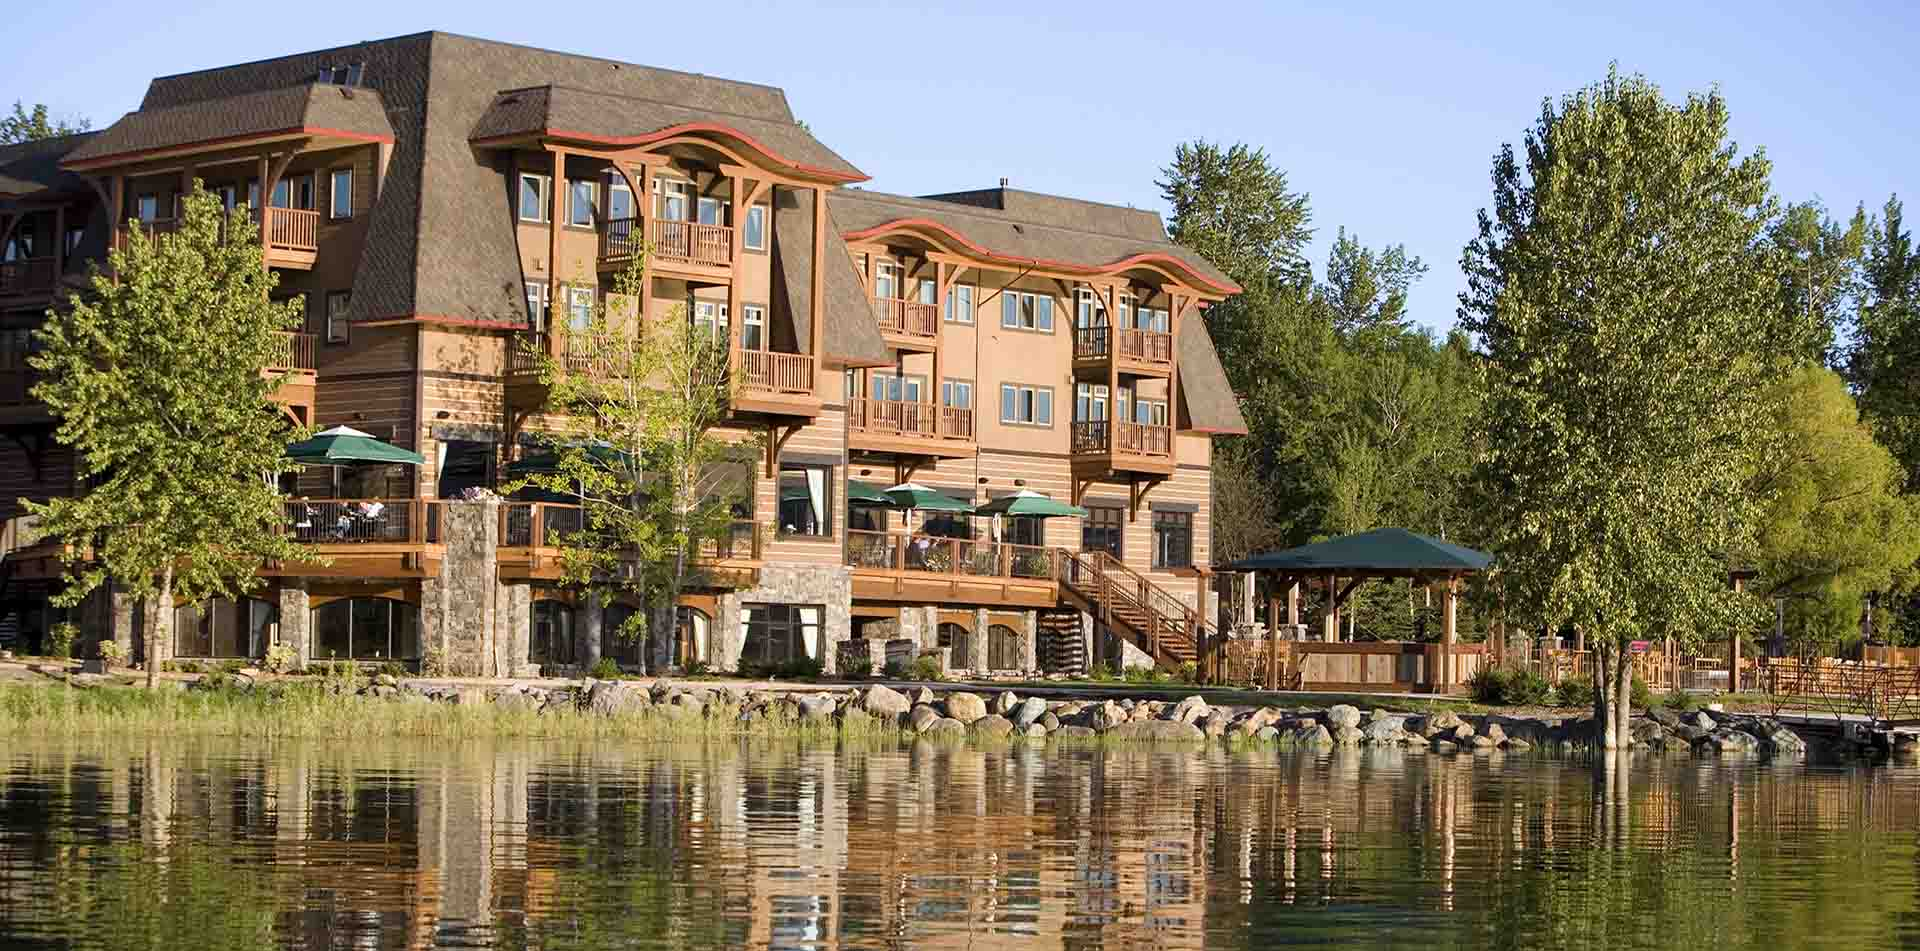 North America United States Whitefish Montana The Lodge at Whitefish Lake relaxing outdoors - luxury vacation destinations